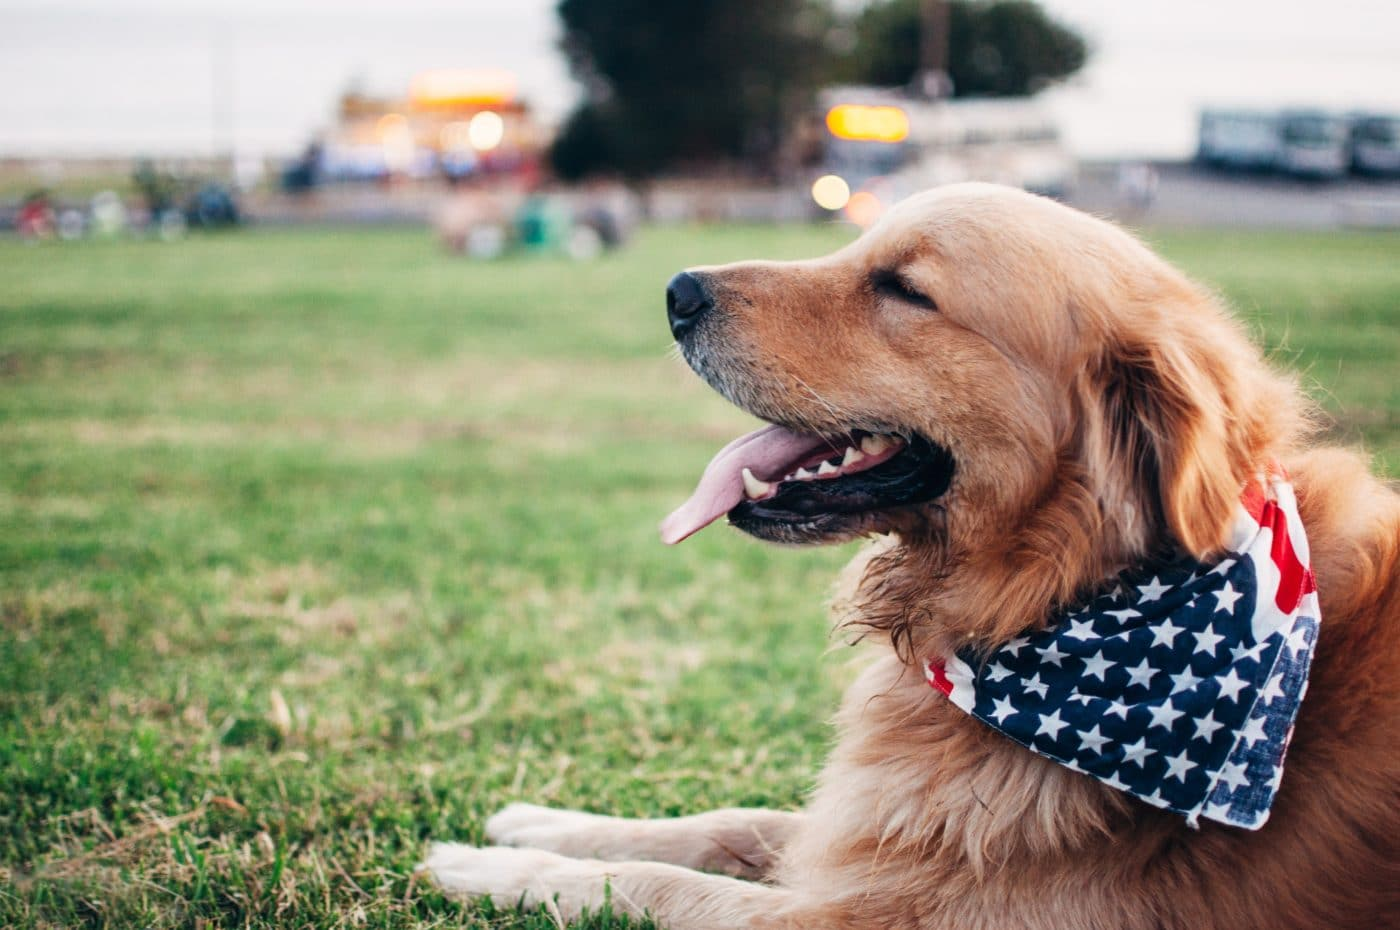 Best places to celebrate 4th of july in Los Angeles